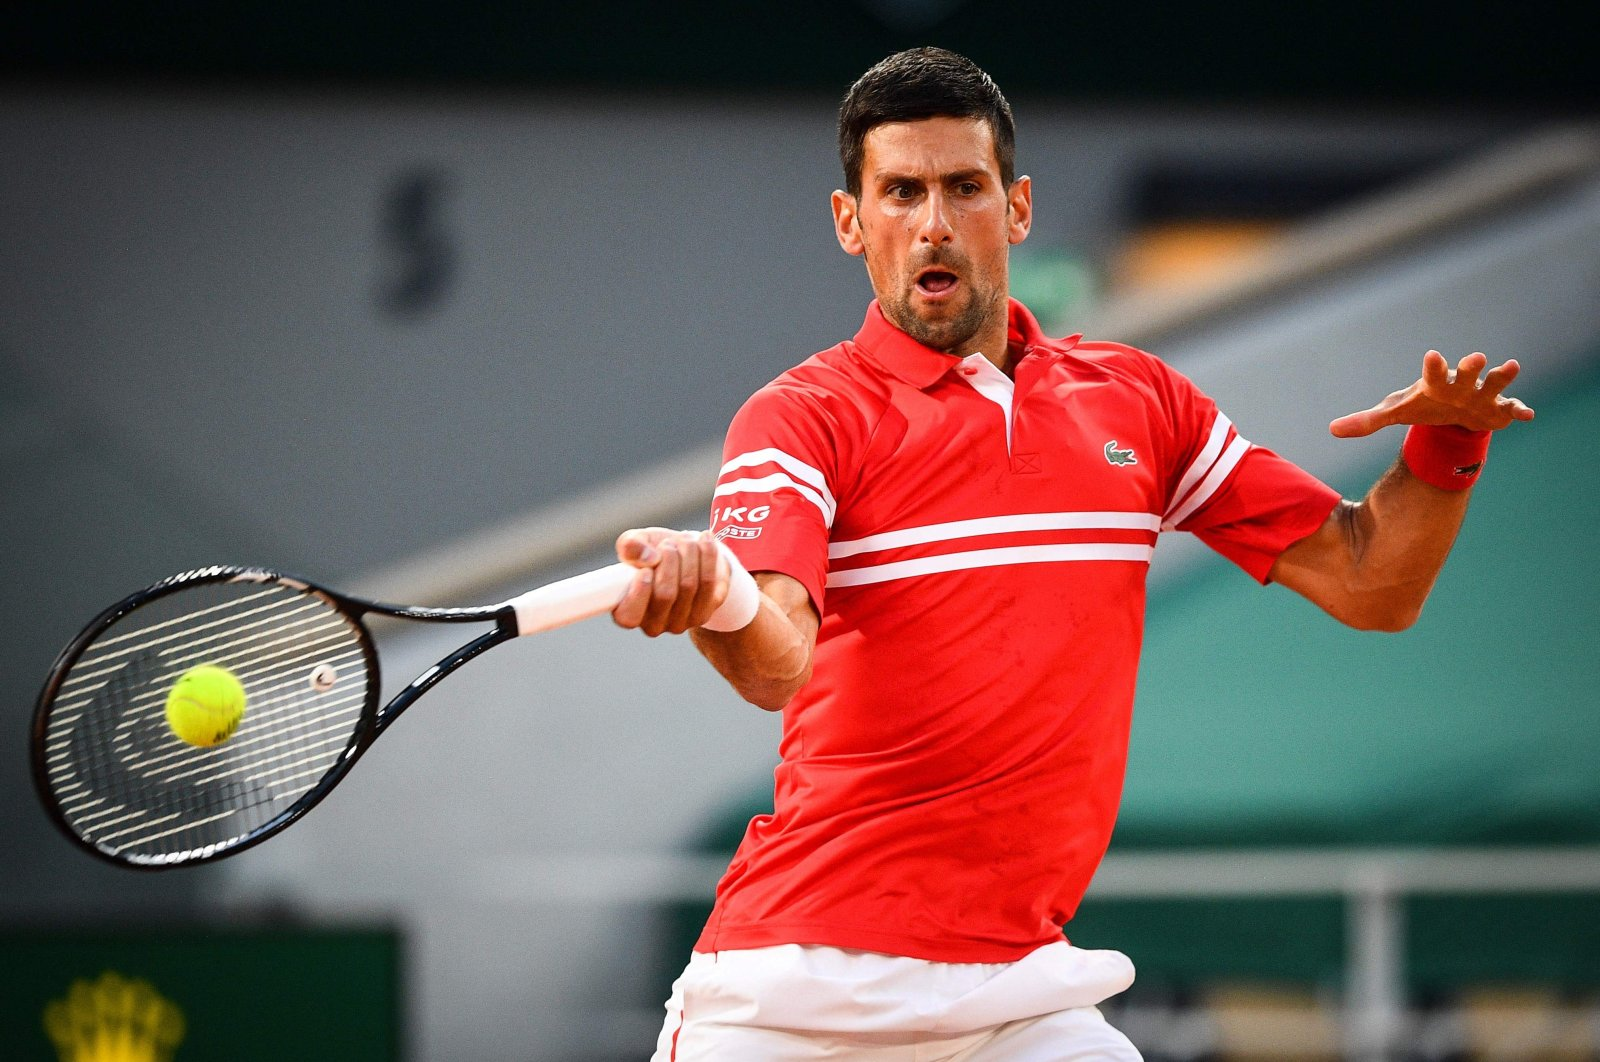 Serbia's Novak Djokovic returns the ball to Tennys Sandgren of the US during their French Open men's singles first-round match at the Roland Garros, Paris, France, June 1, 2021. (AFP Photo)